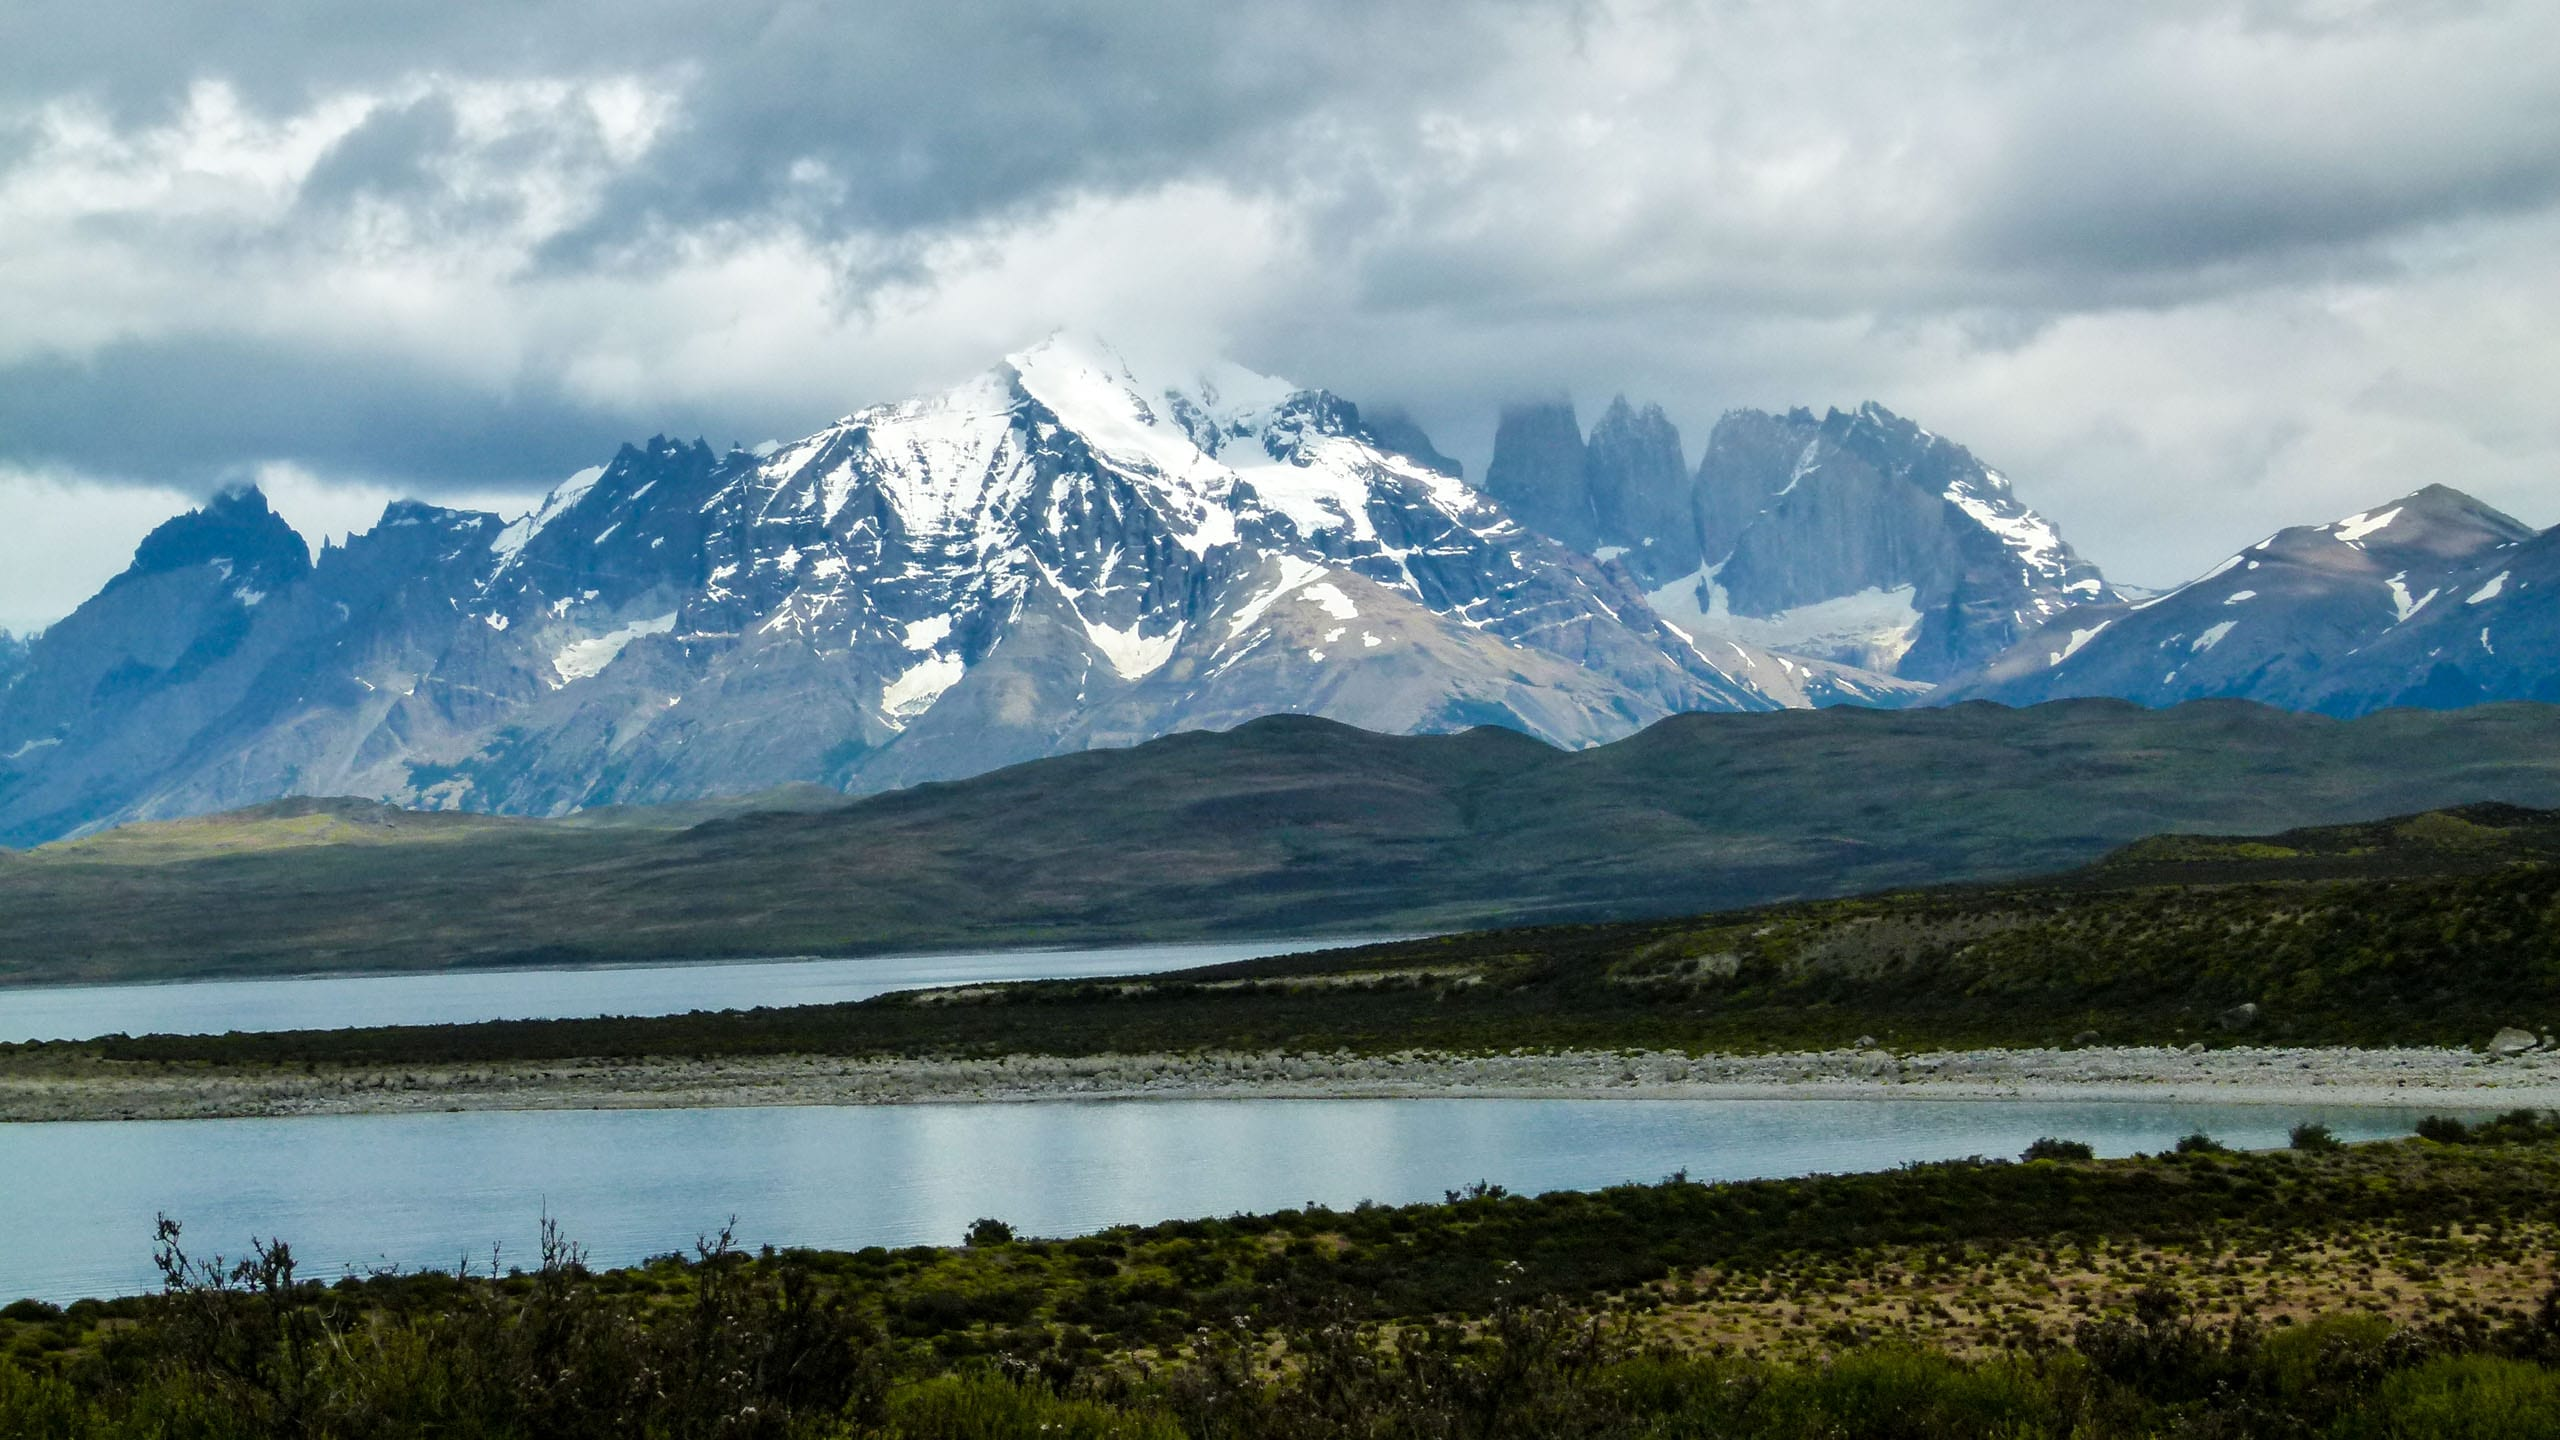 View of Chile mountain range across water